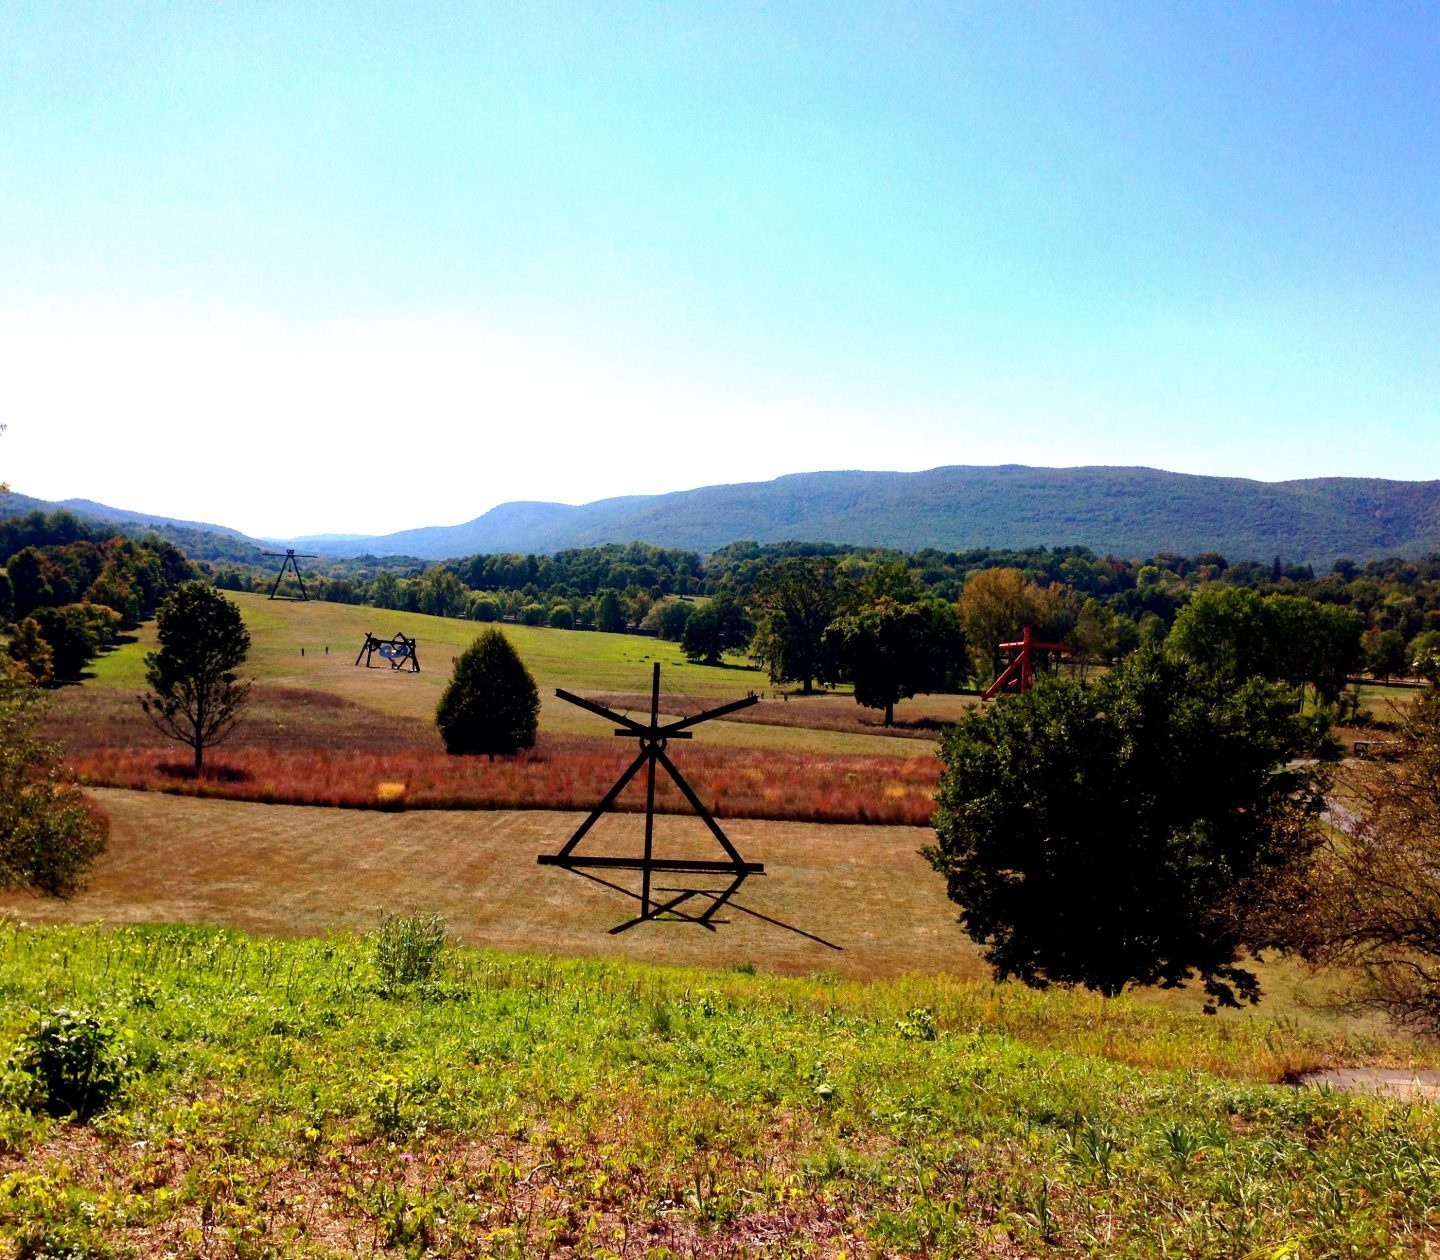 Storm King Art Center: The Perfect Day Trip from New York City